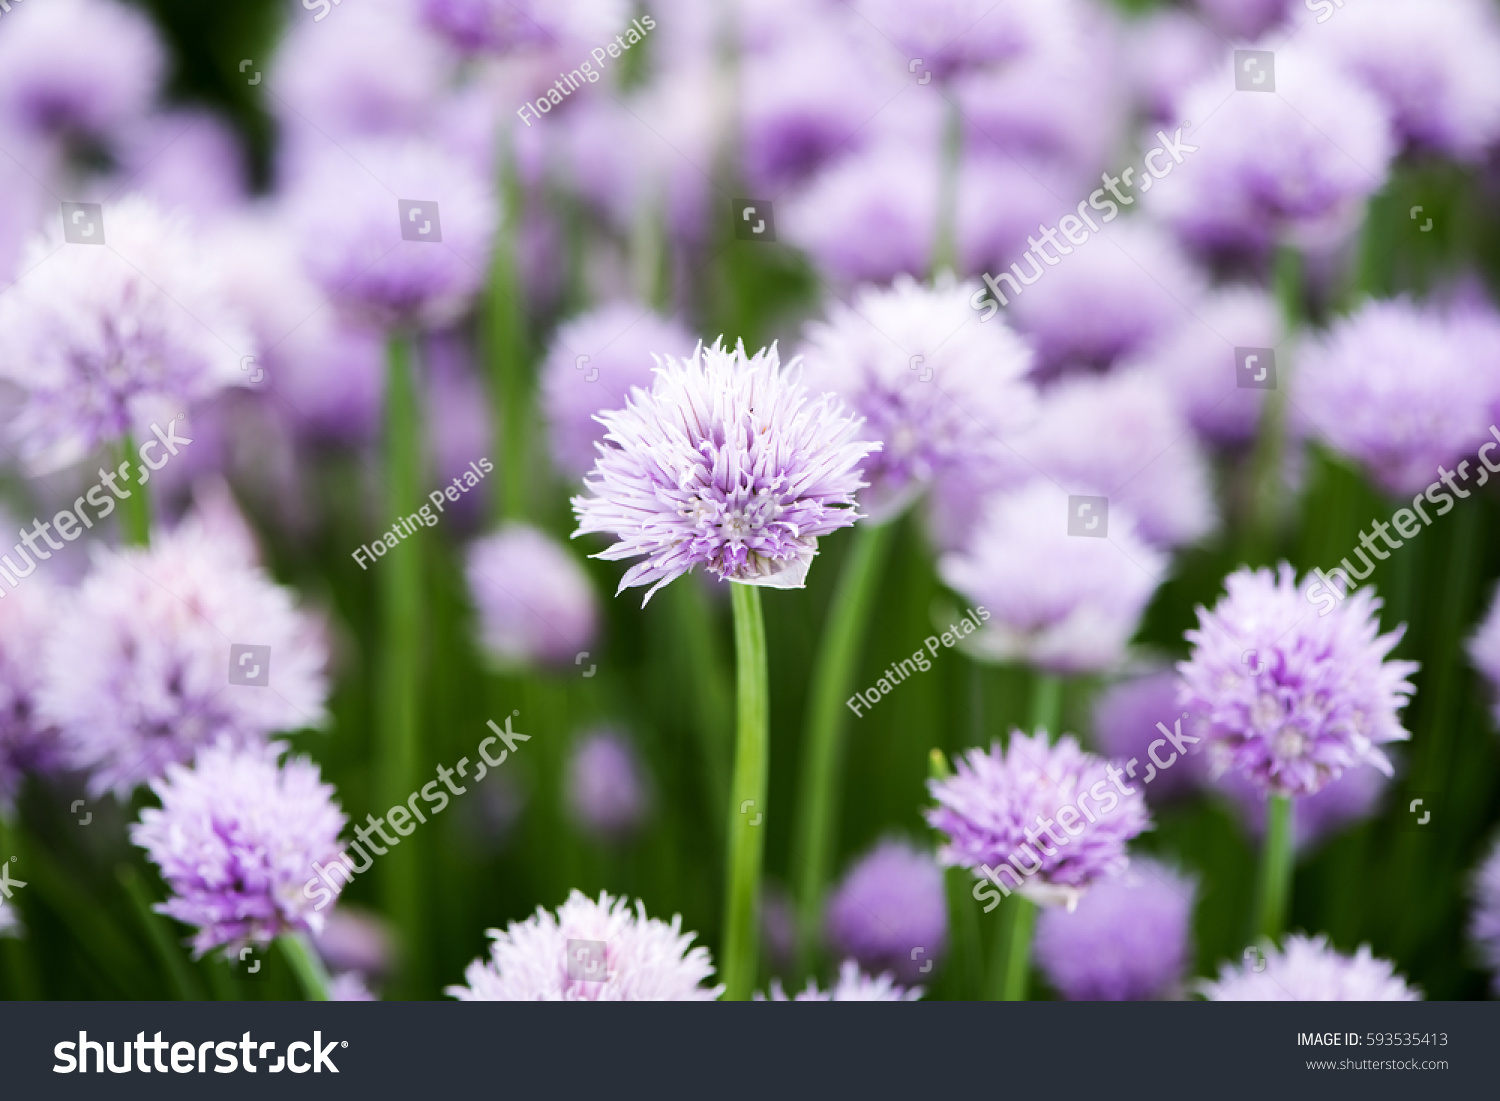 Beautiful flower in nature and as a background flowering chive id 593535413 izmirmasajfo